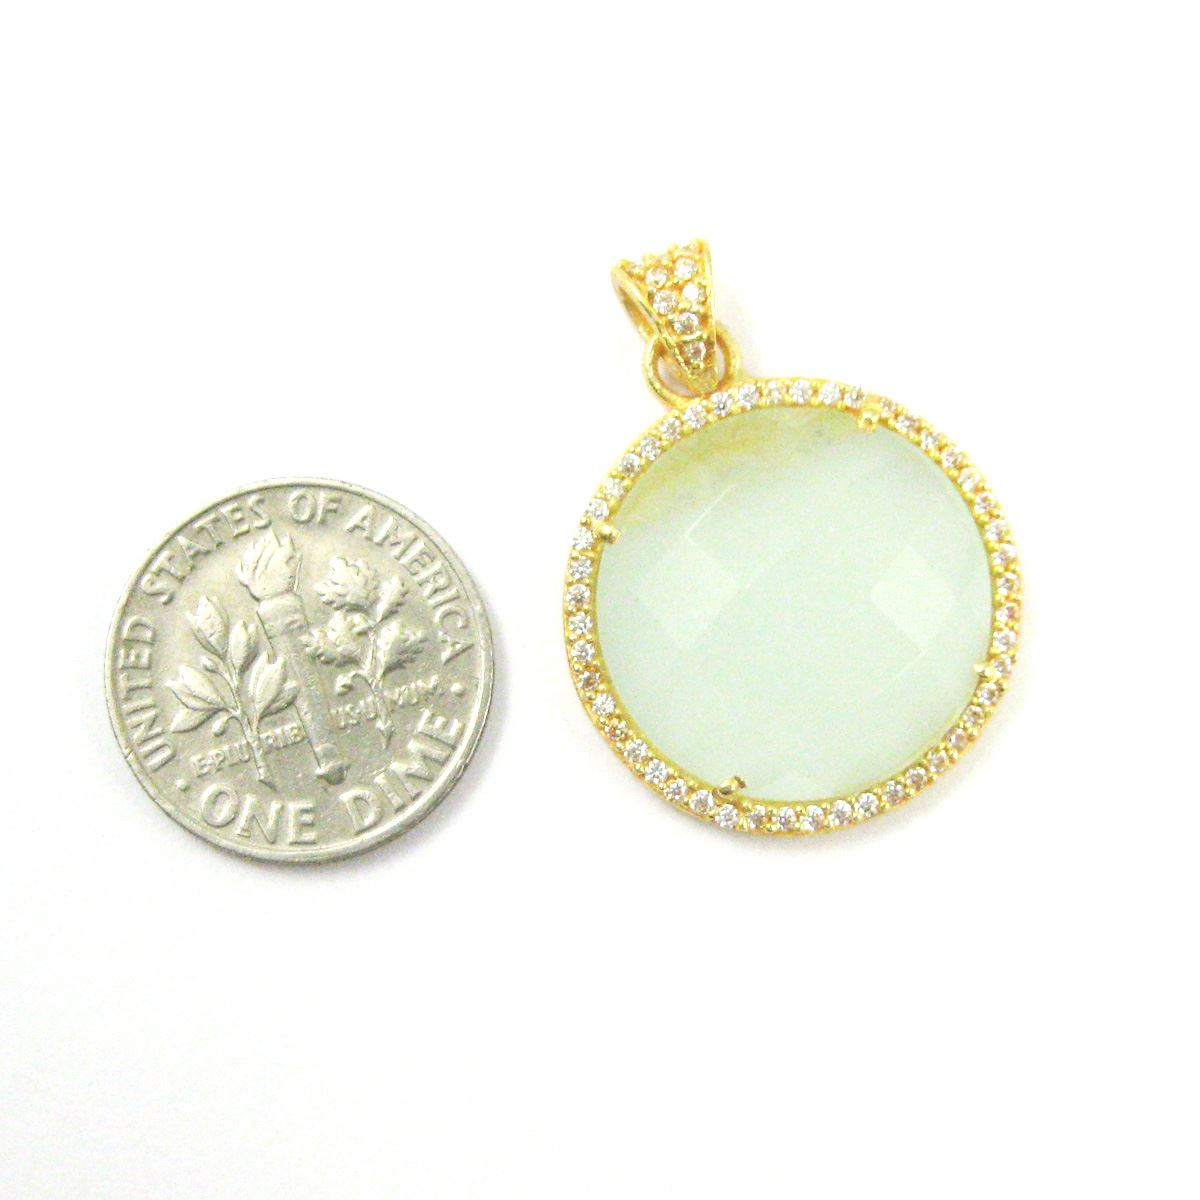 22k Gold plated Sterling Silver Pave Bezel Gemstone Pendant - Cubic Zirconia Pave Setting -  Round Faceted Stone-Aqua Chalcedony - 21mm